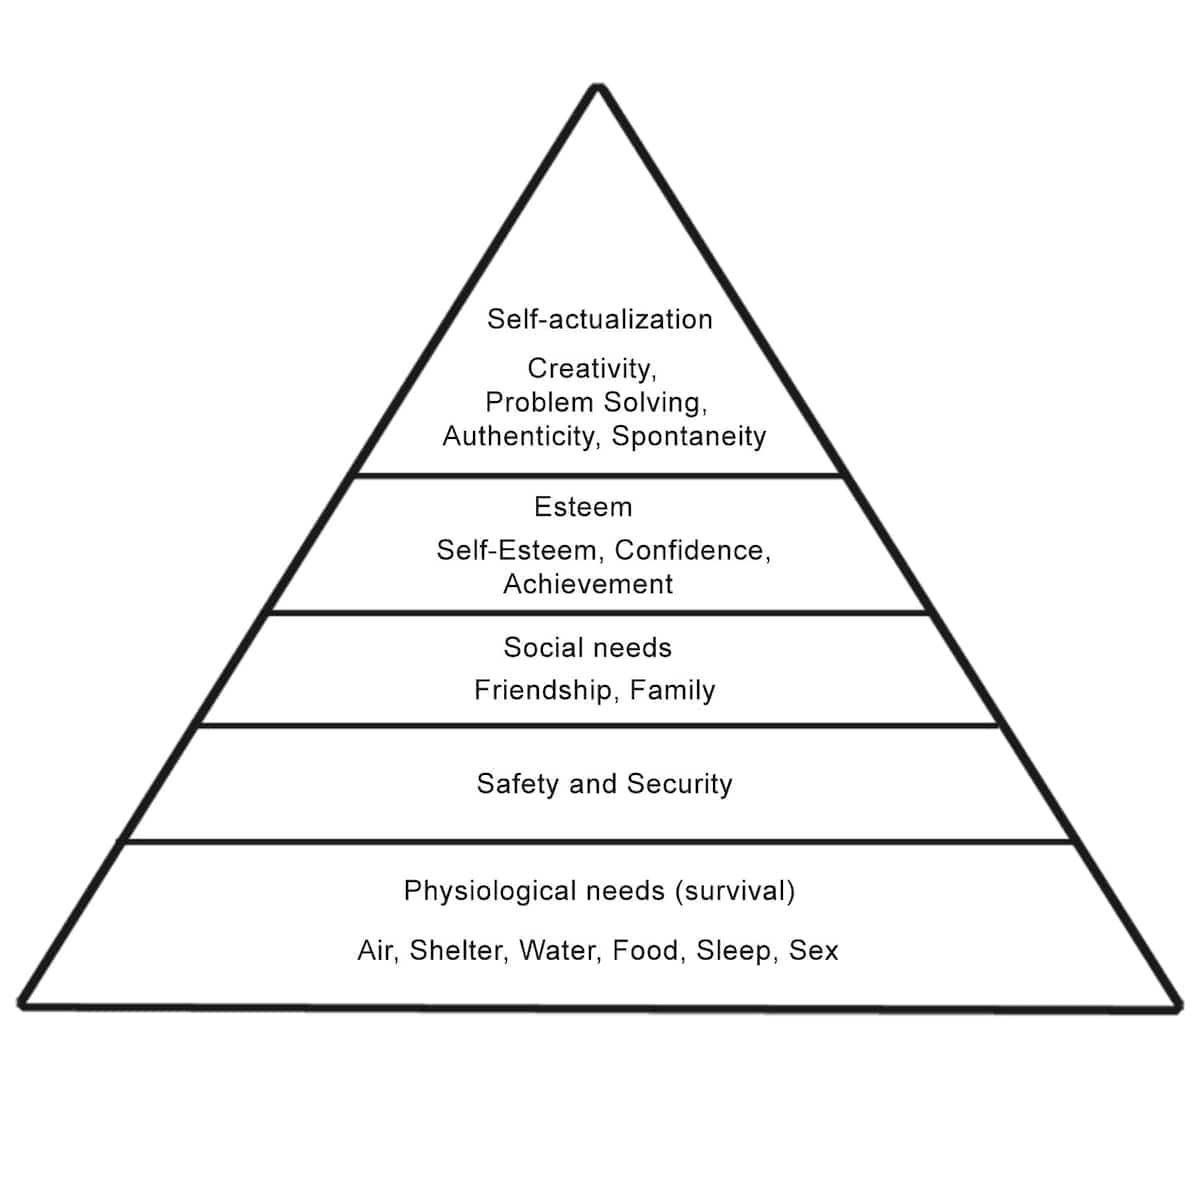 Theories of management, Classical theories of management, Contemporary theories of management